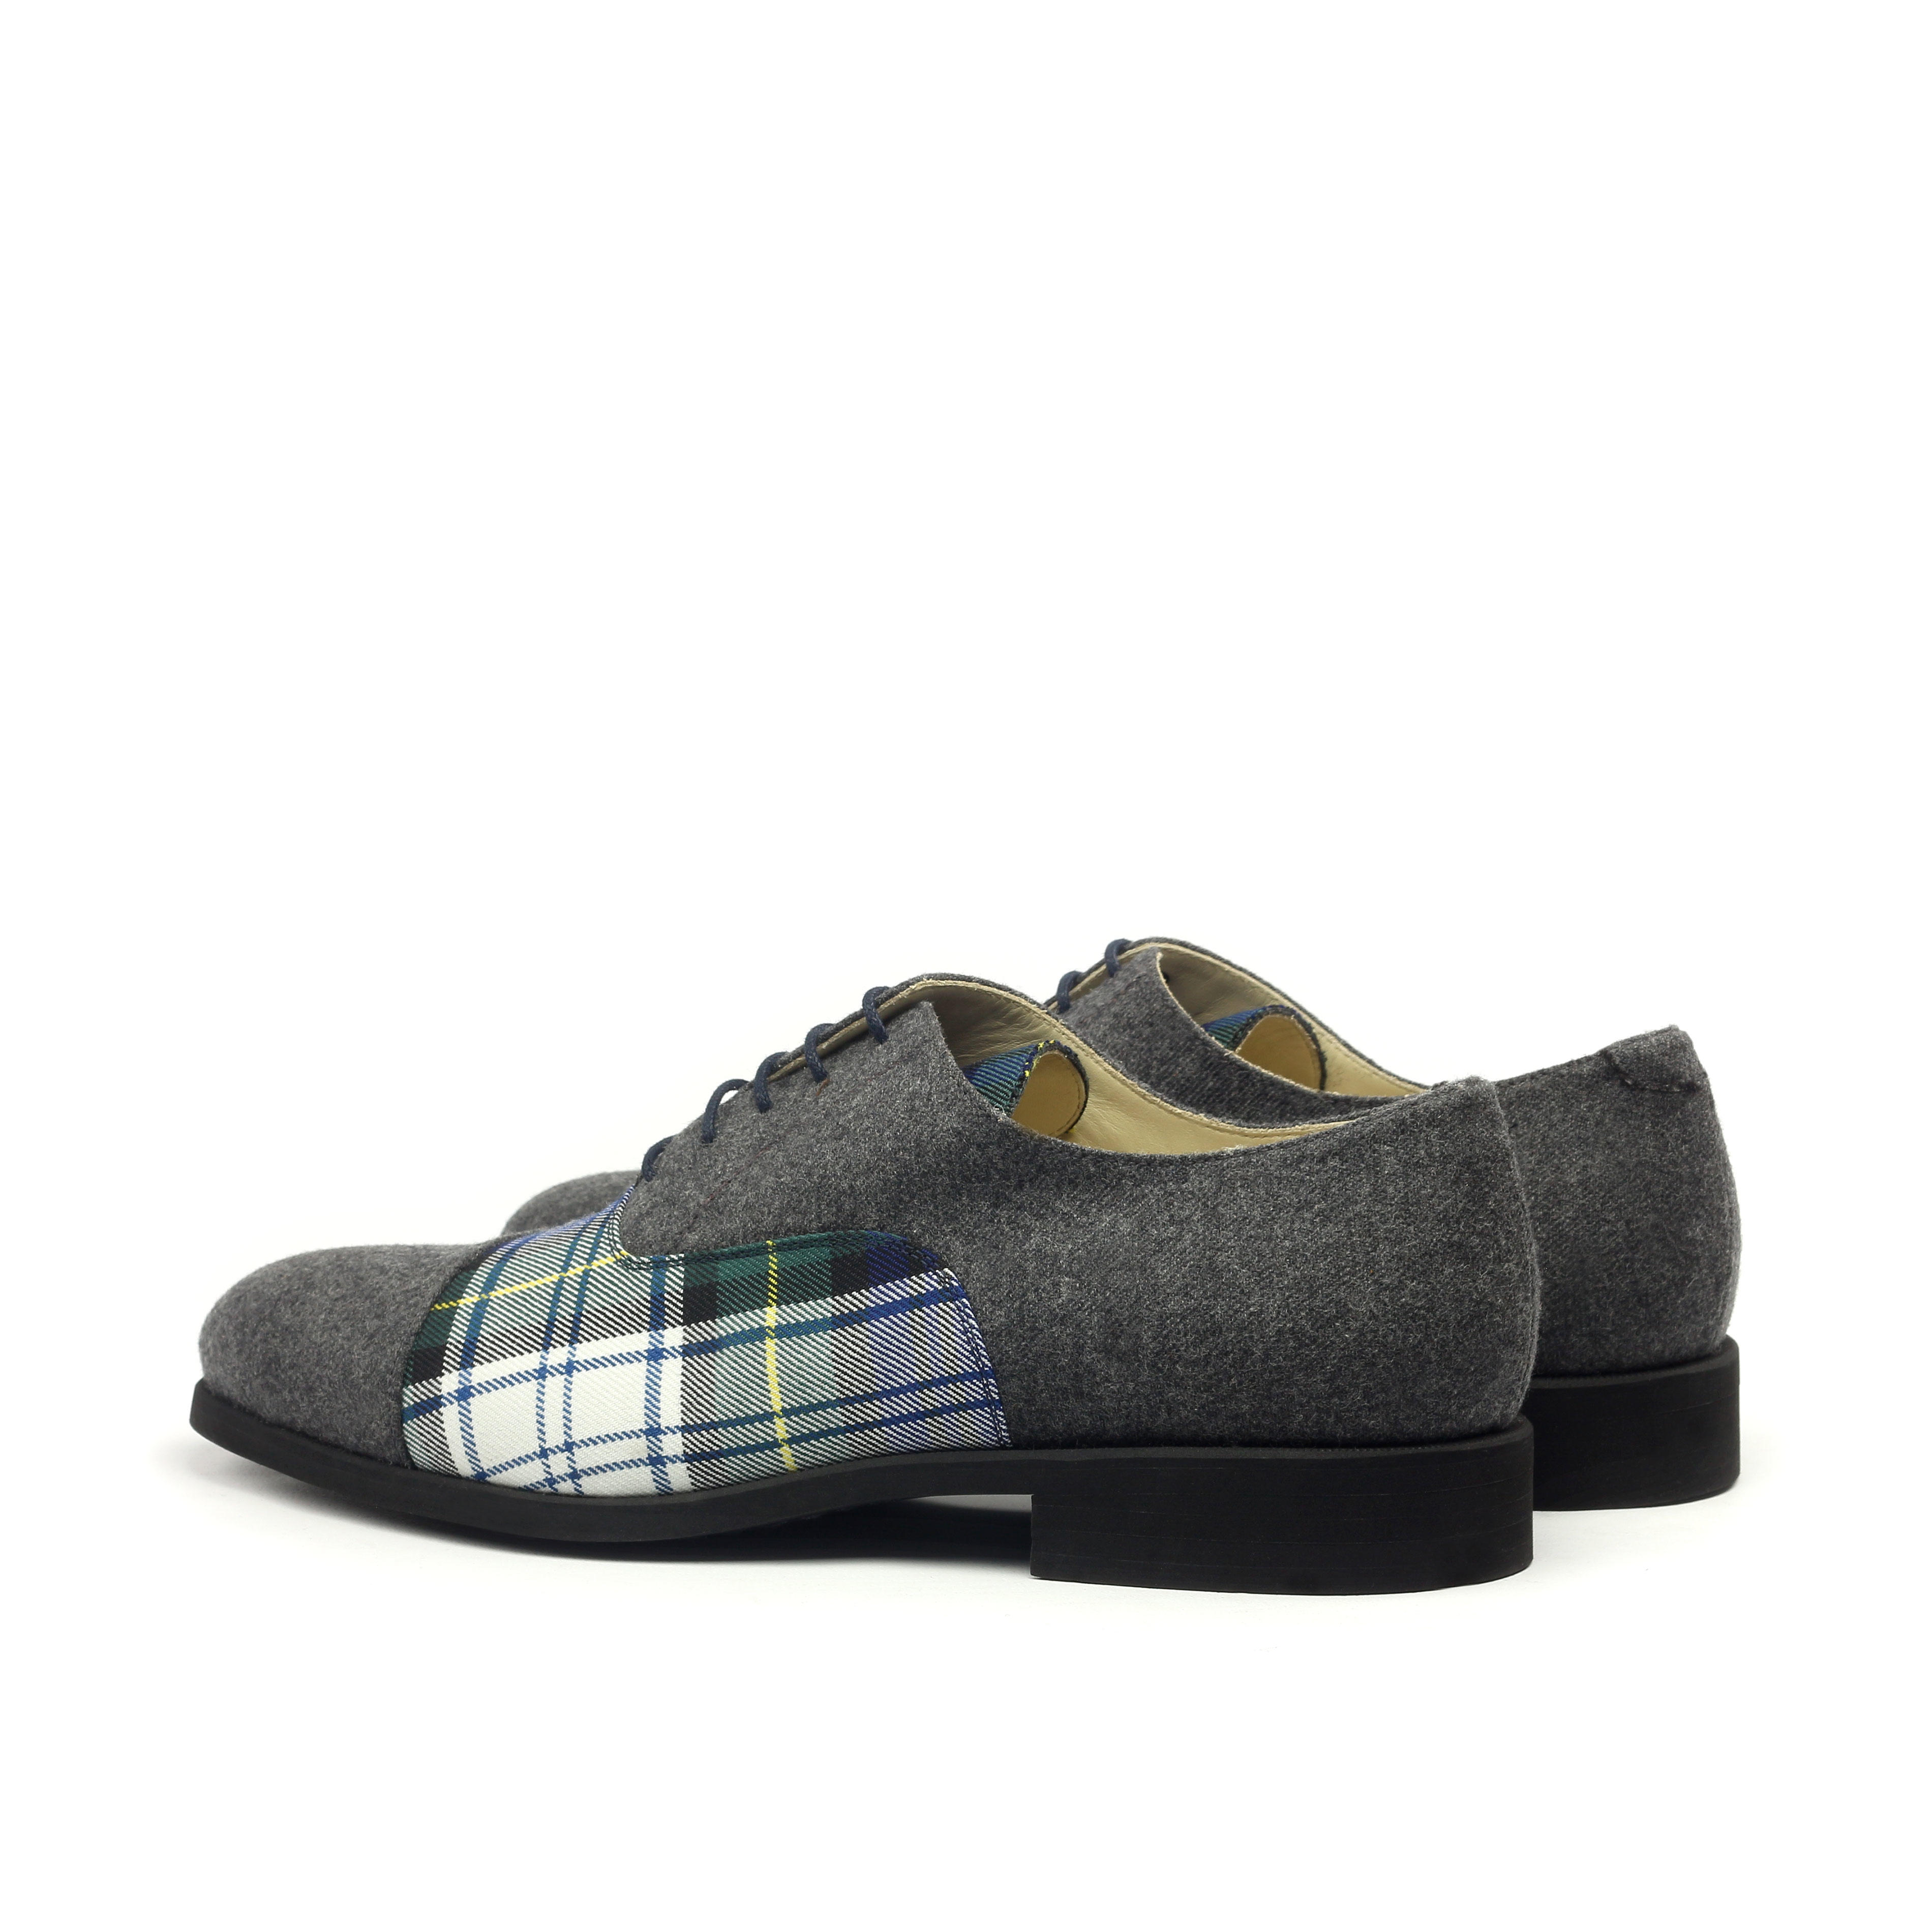 MANOR OF LONDON 'The Oxford' Grey Flannel & Tartan Shoe Luxury Custom Initials Monogrammed Back Side View